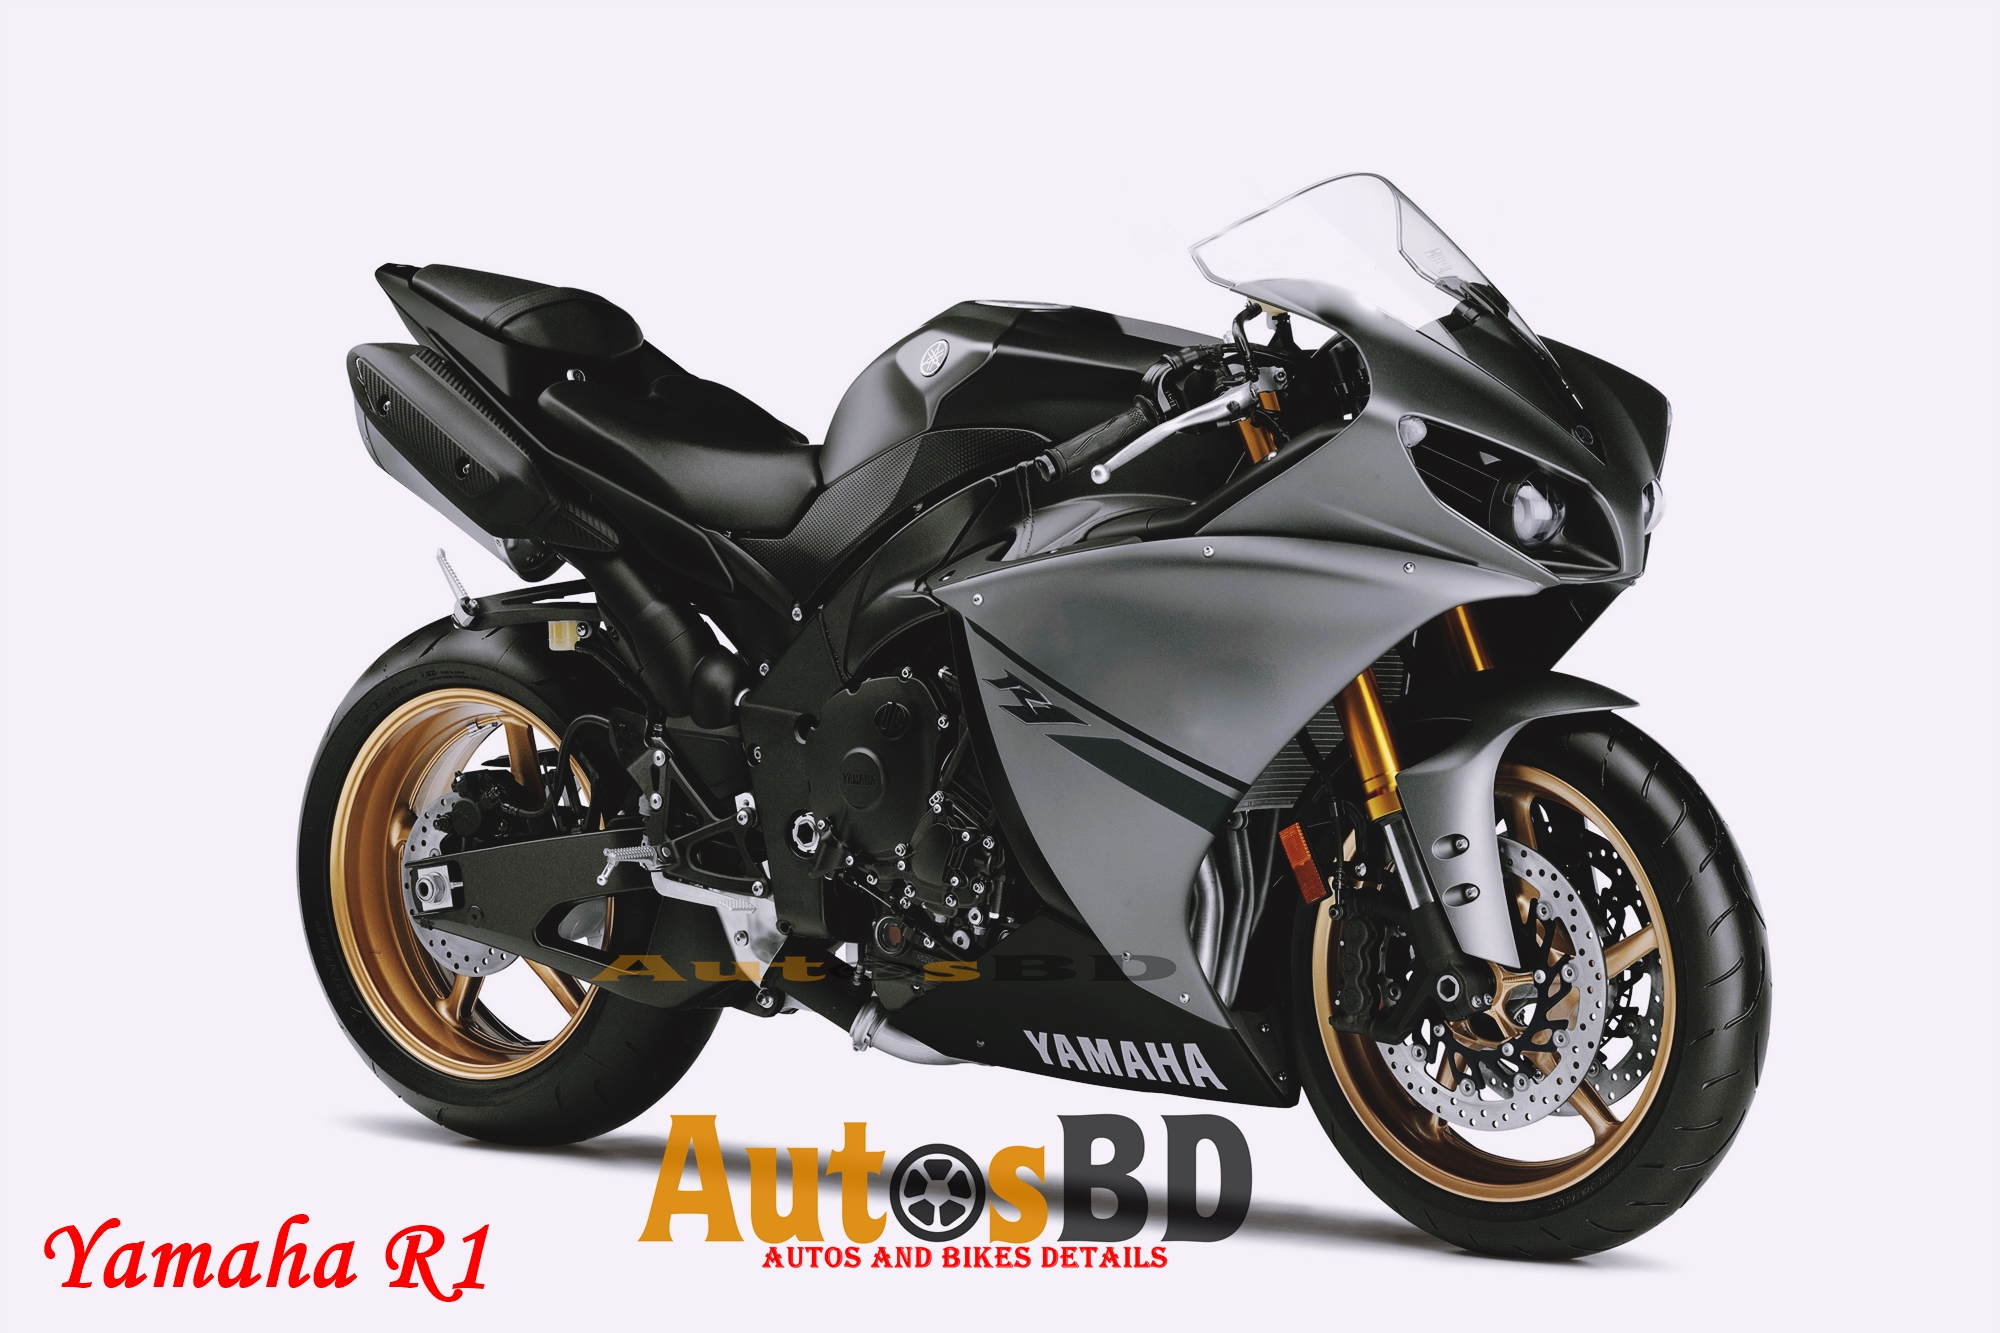 Yamaha R1 Motorcycle Price In India